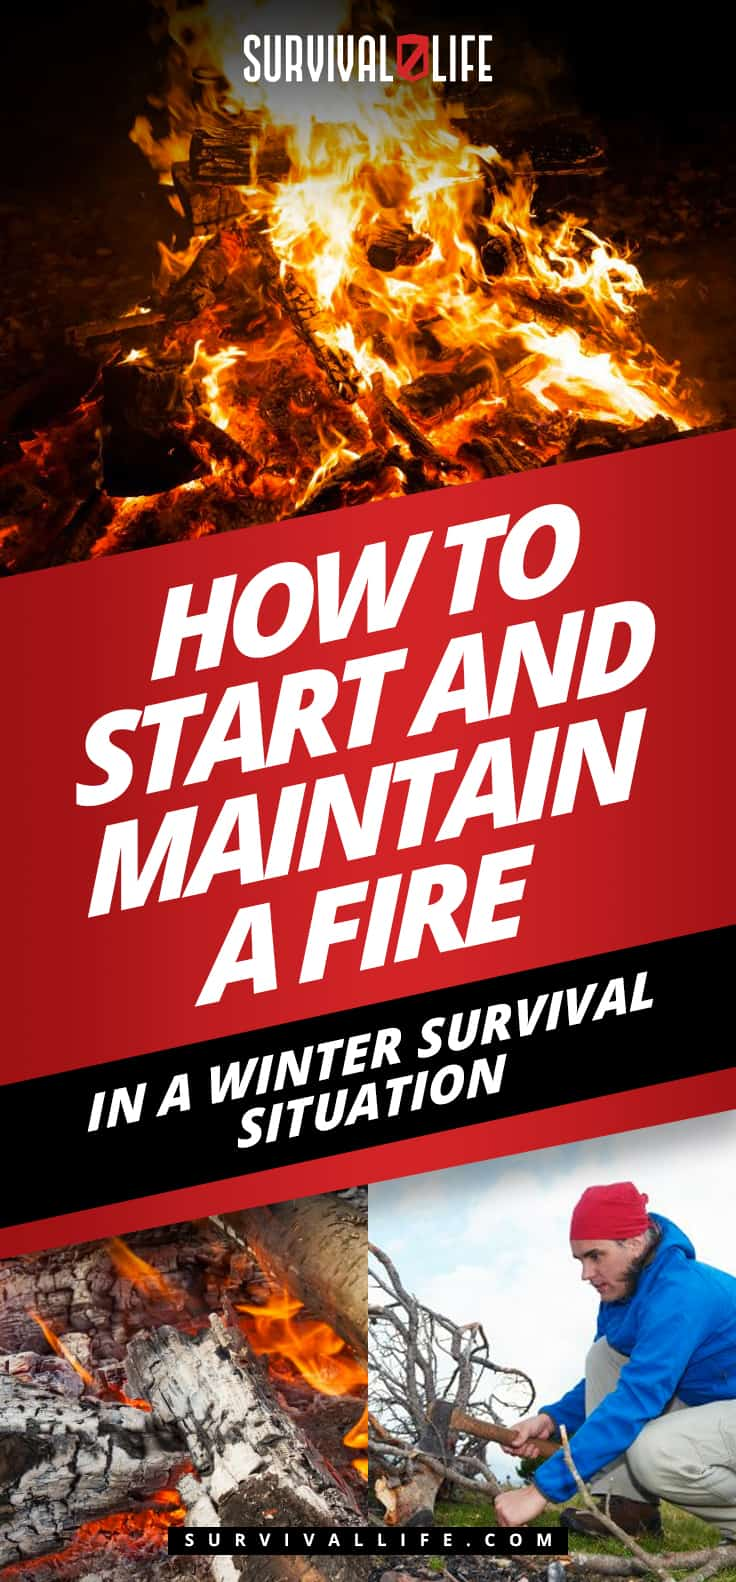 How To Start and Maintain a Fire in a Winter Survival Situation